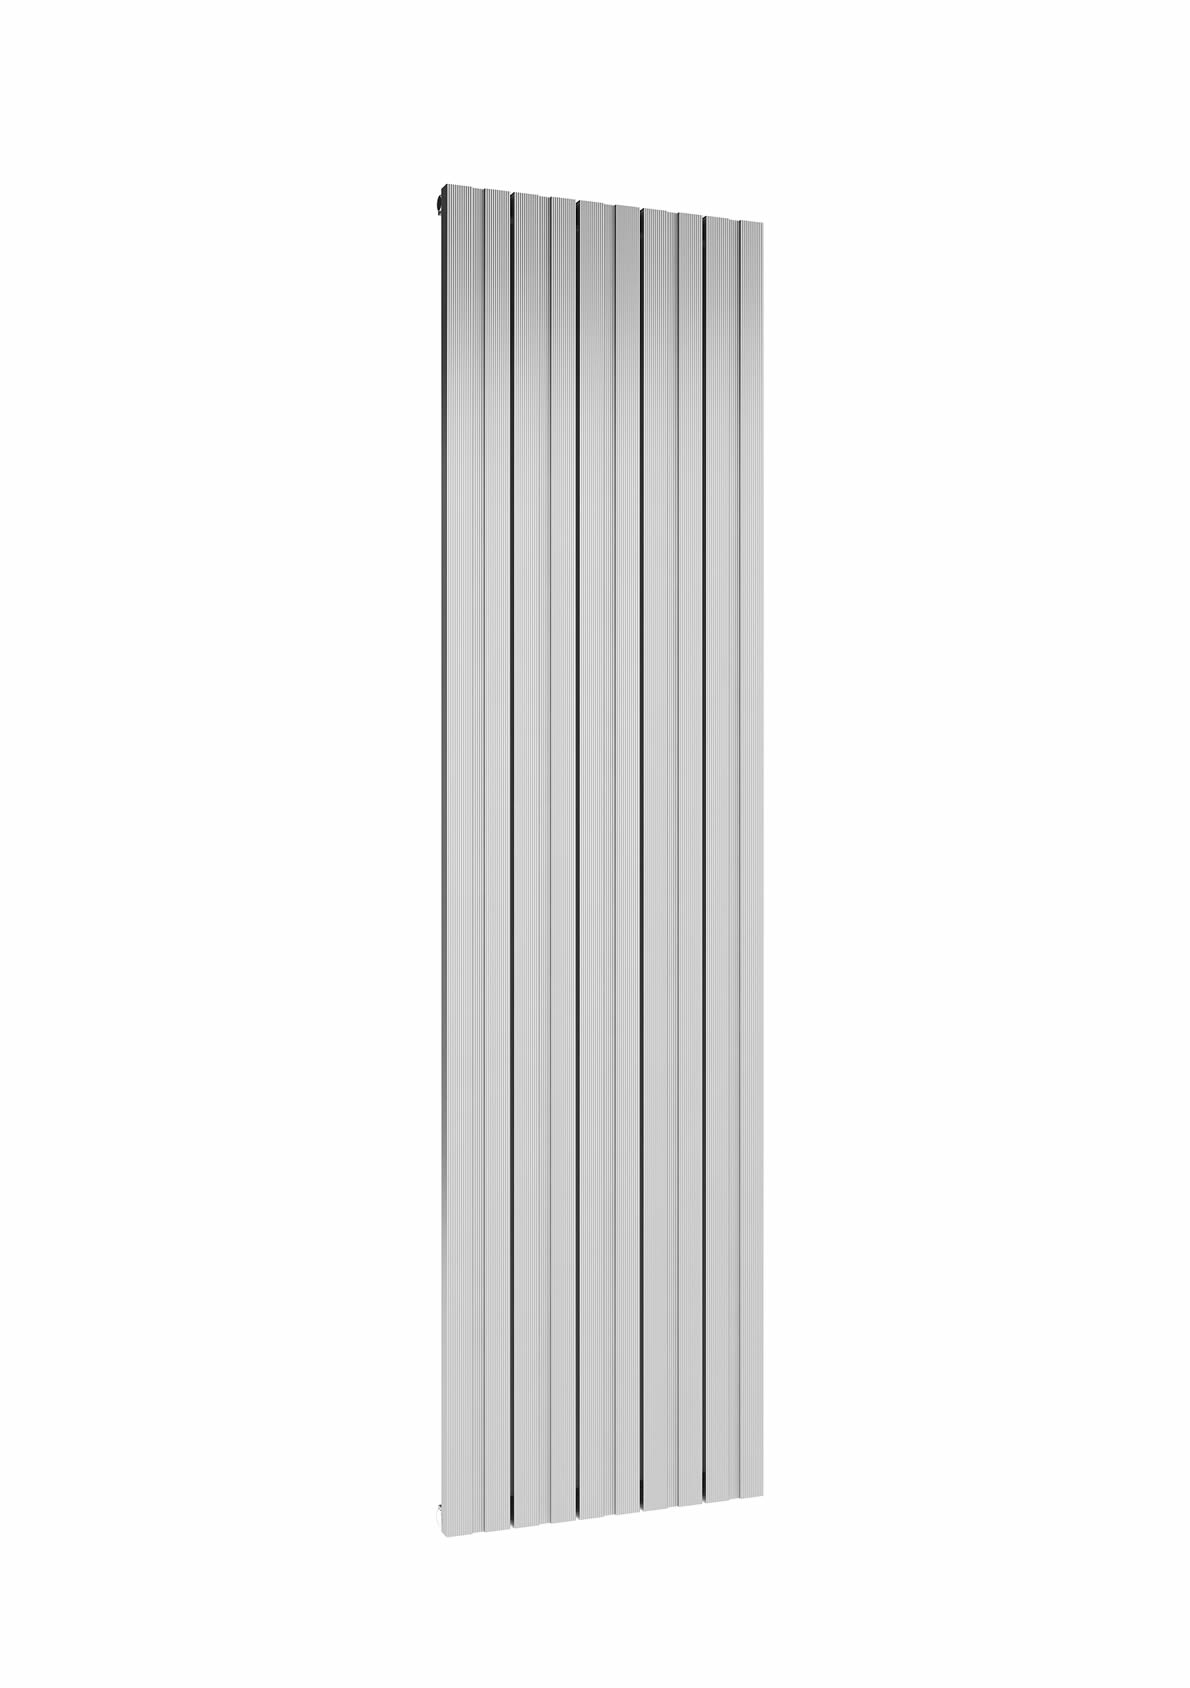 BOVA 1800 x 280 POLISHED SINGLE PANEL VERTICAL ALUMINIUM RADIATOR